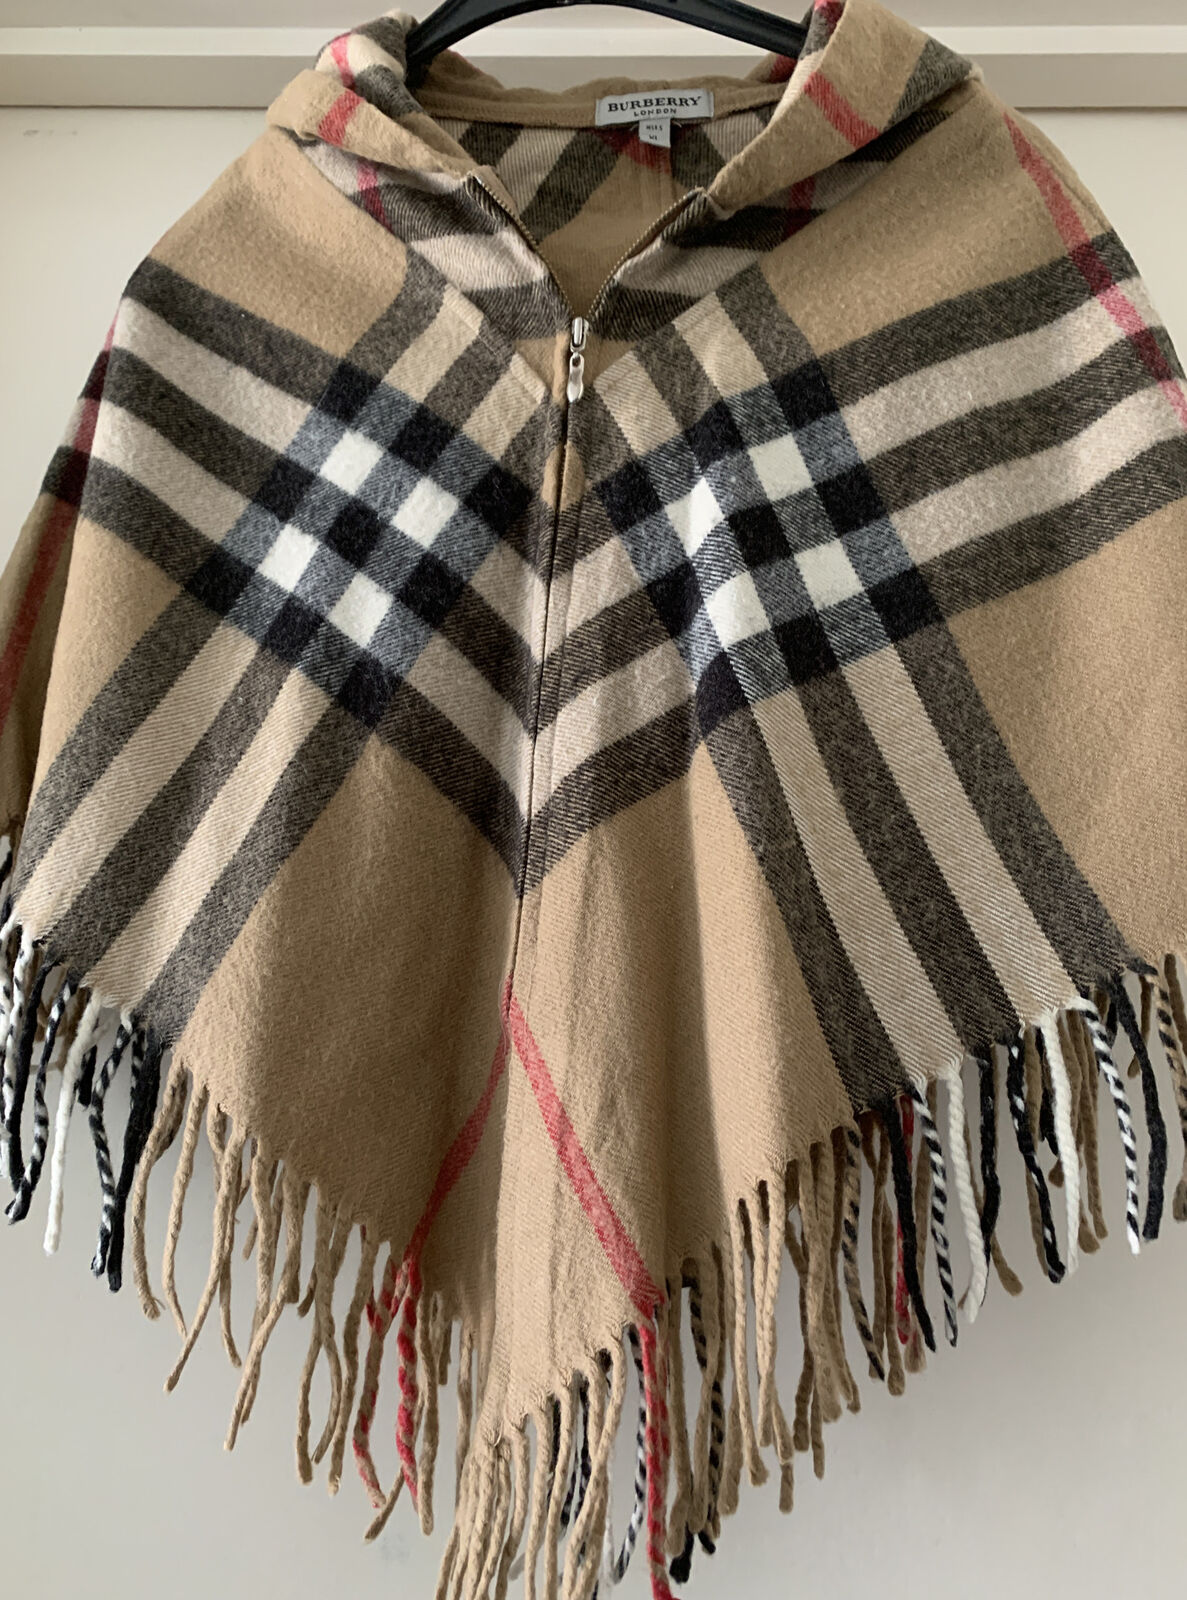 BURBERRY CAPE PONCHO HOODED HOUSE CHECK GIRLS SIZE 6-8 UK 8YEARS OLD SMALL CHILD